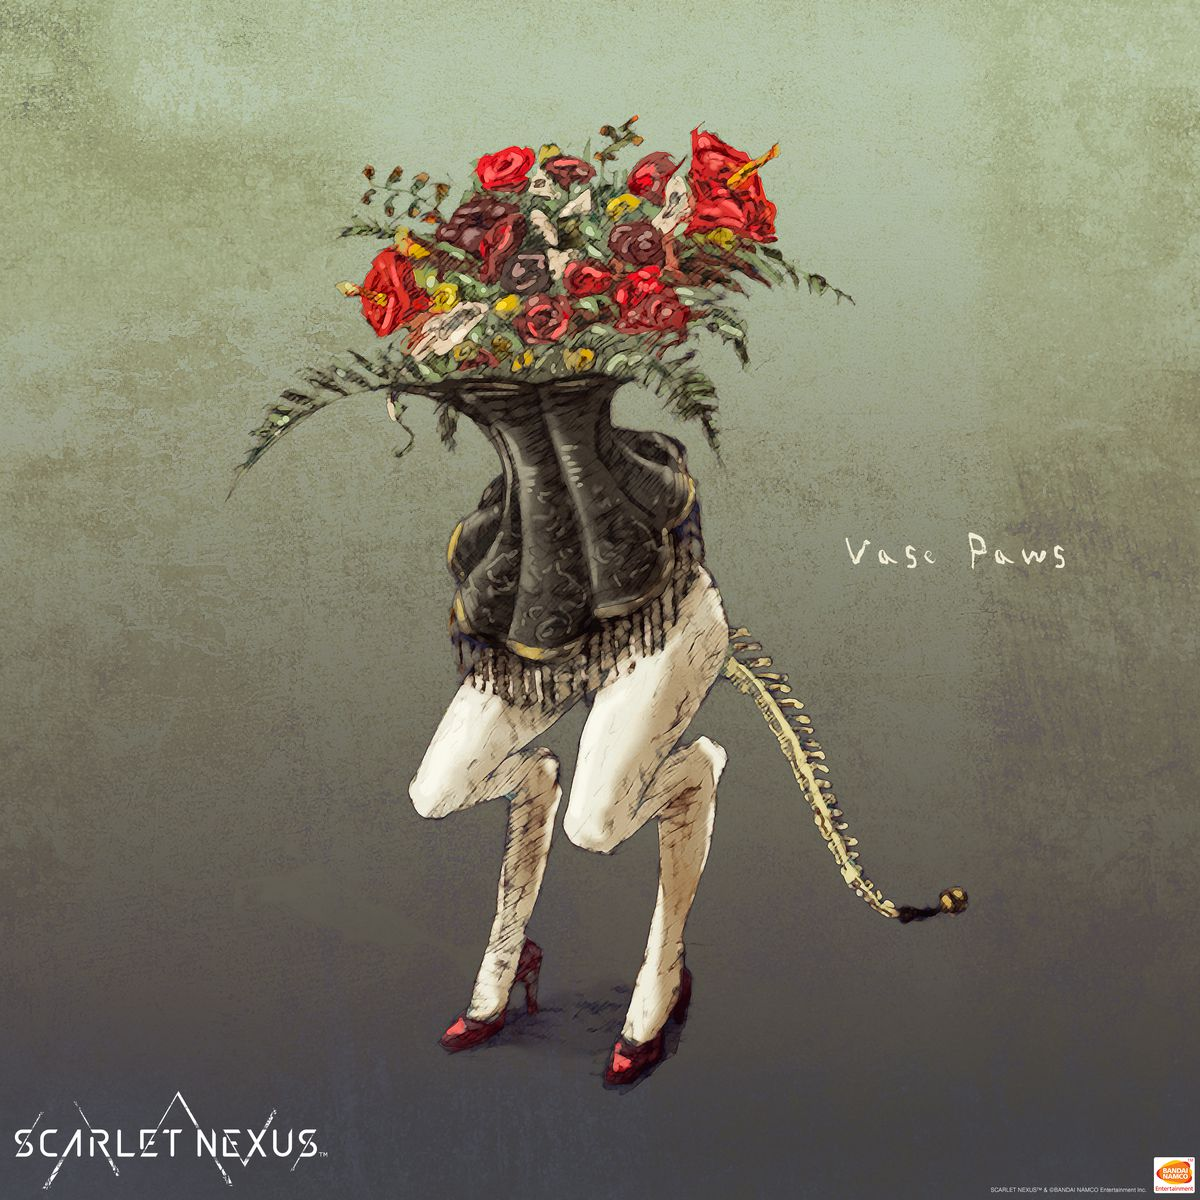 Concept art of an Other monster from Scarlet Nexus with flowers sprouting out of a corset, bird legs, high heels, and a long tail that's all exposed spine.